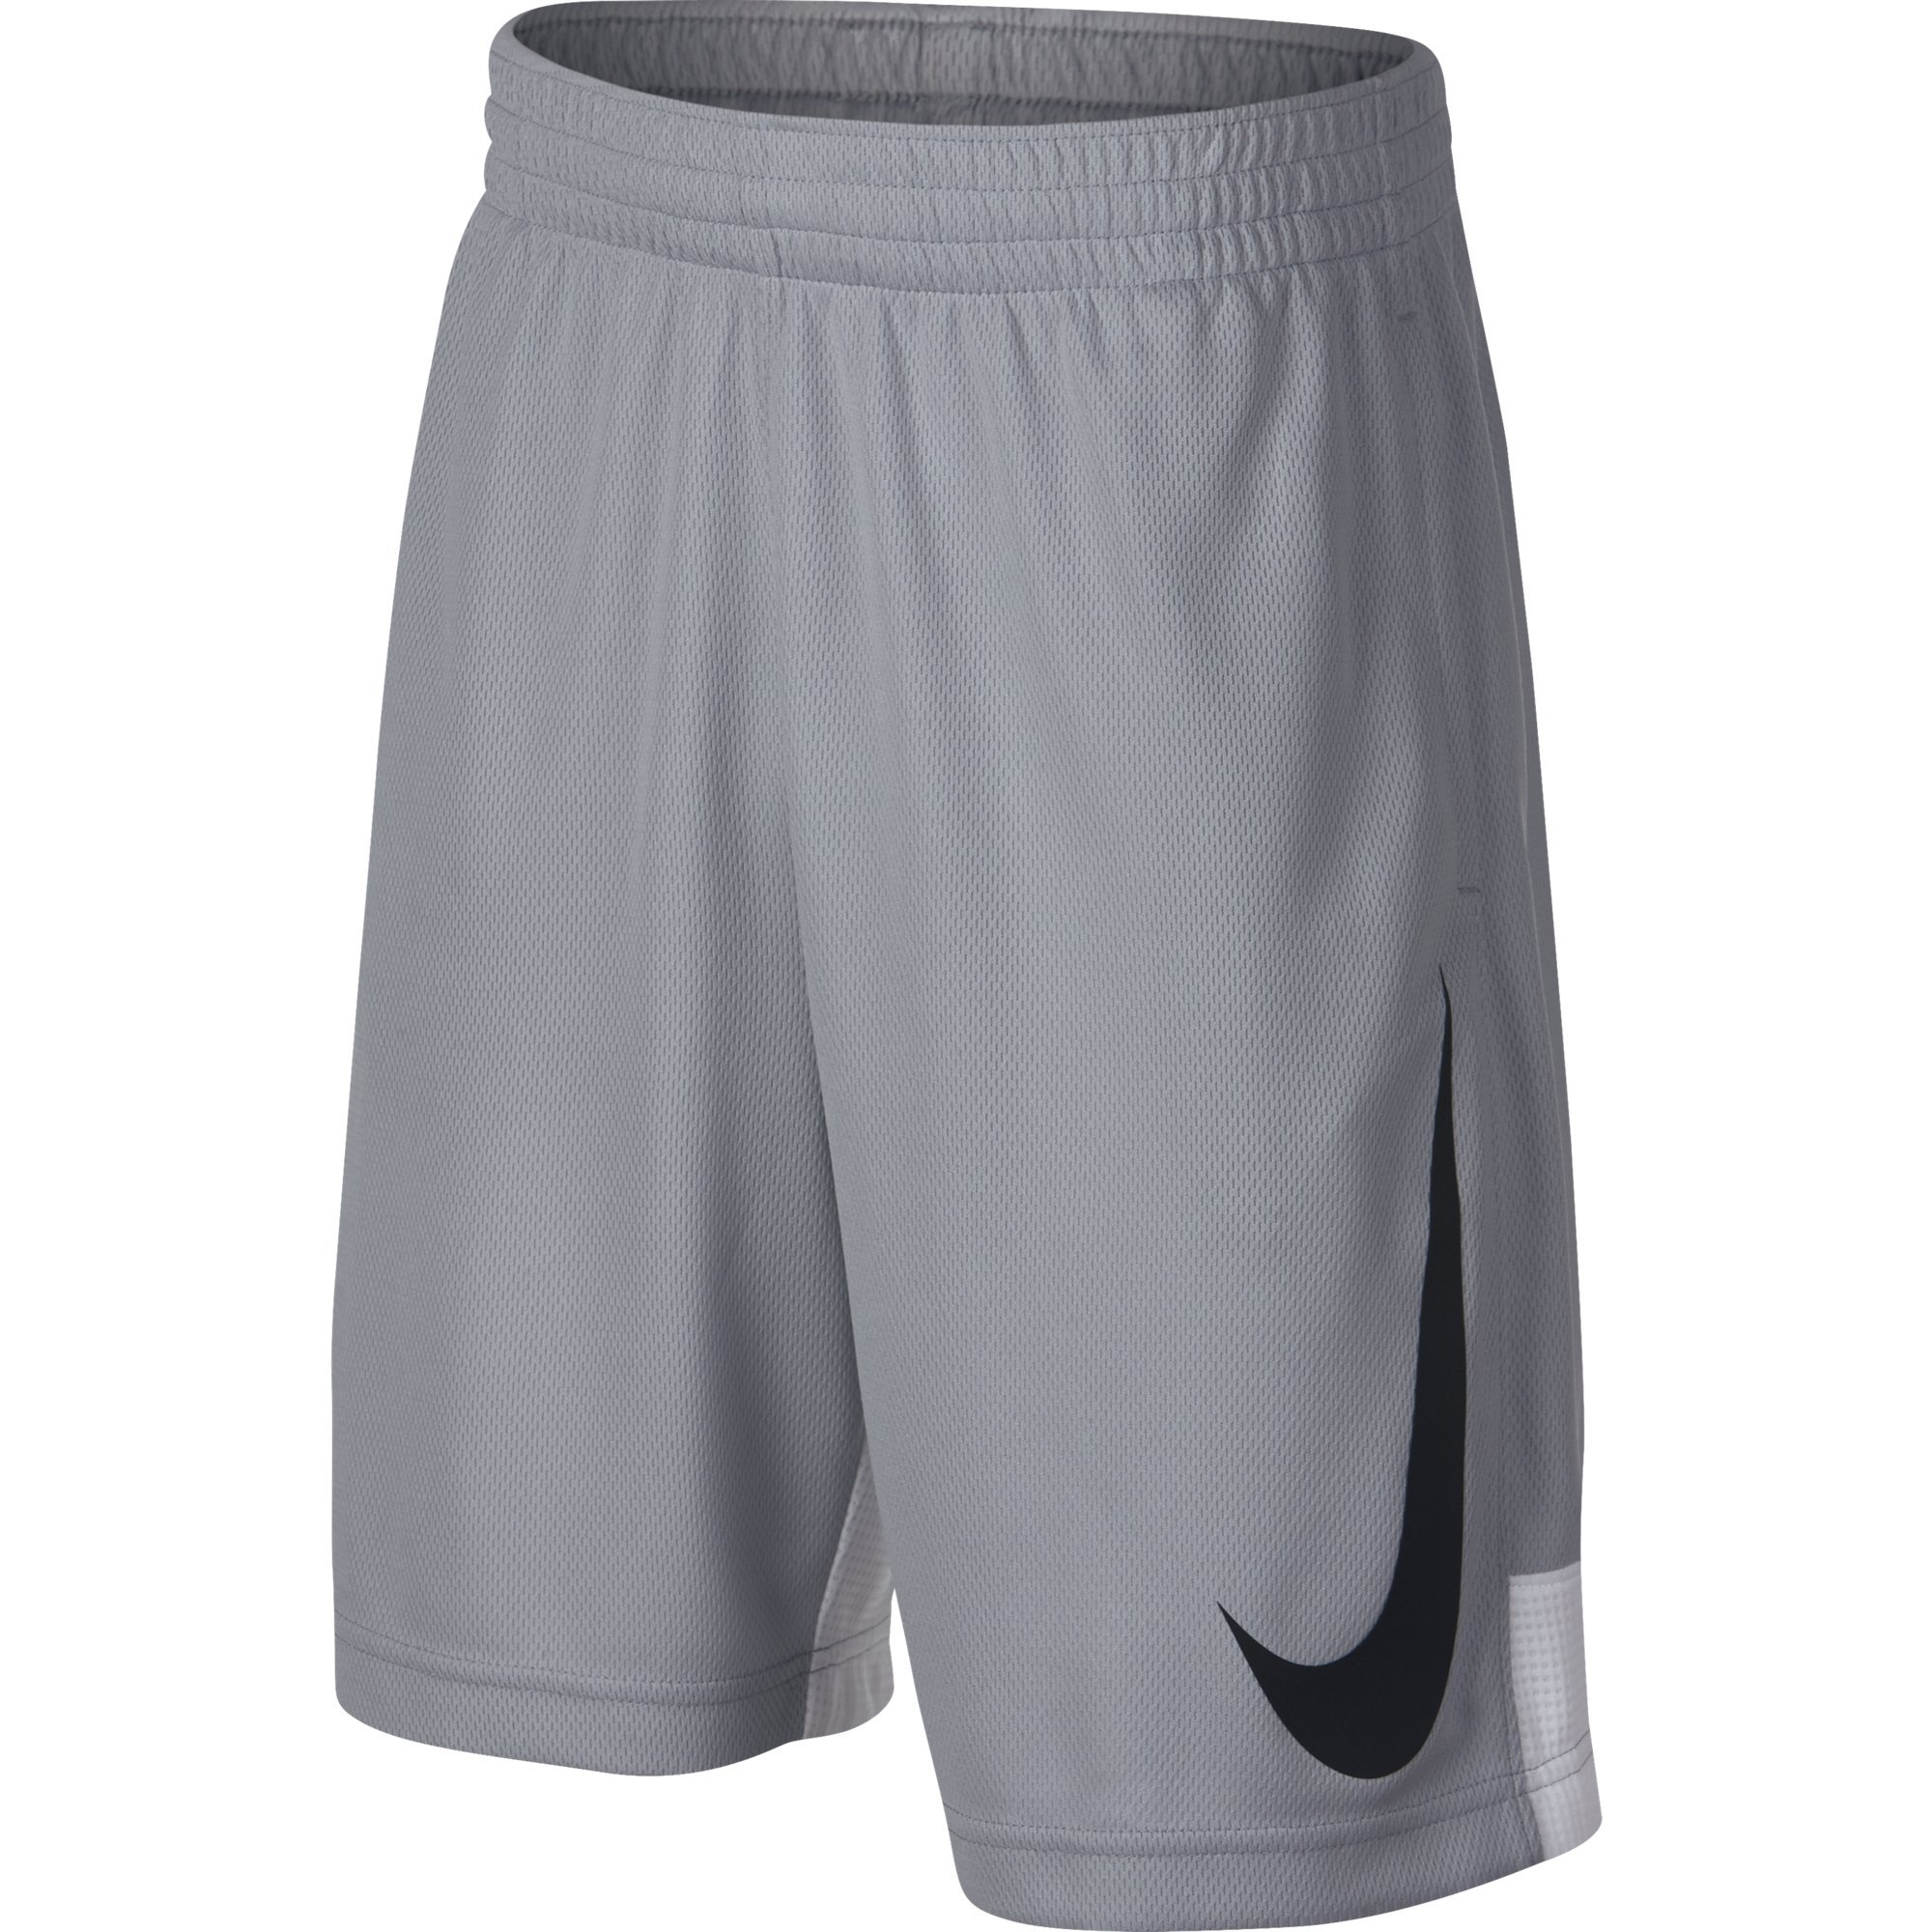 NIKE Boys' Dry HBR Athletic Shorts, Wolf Grey/White/White/Black, Large